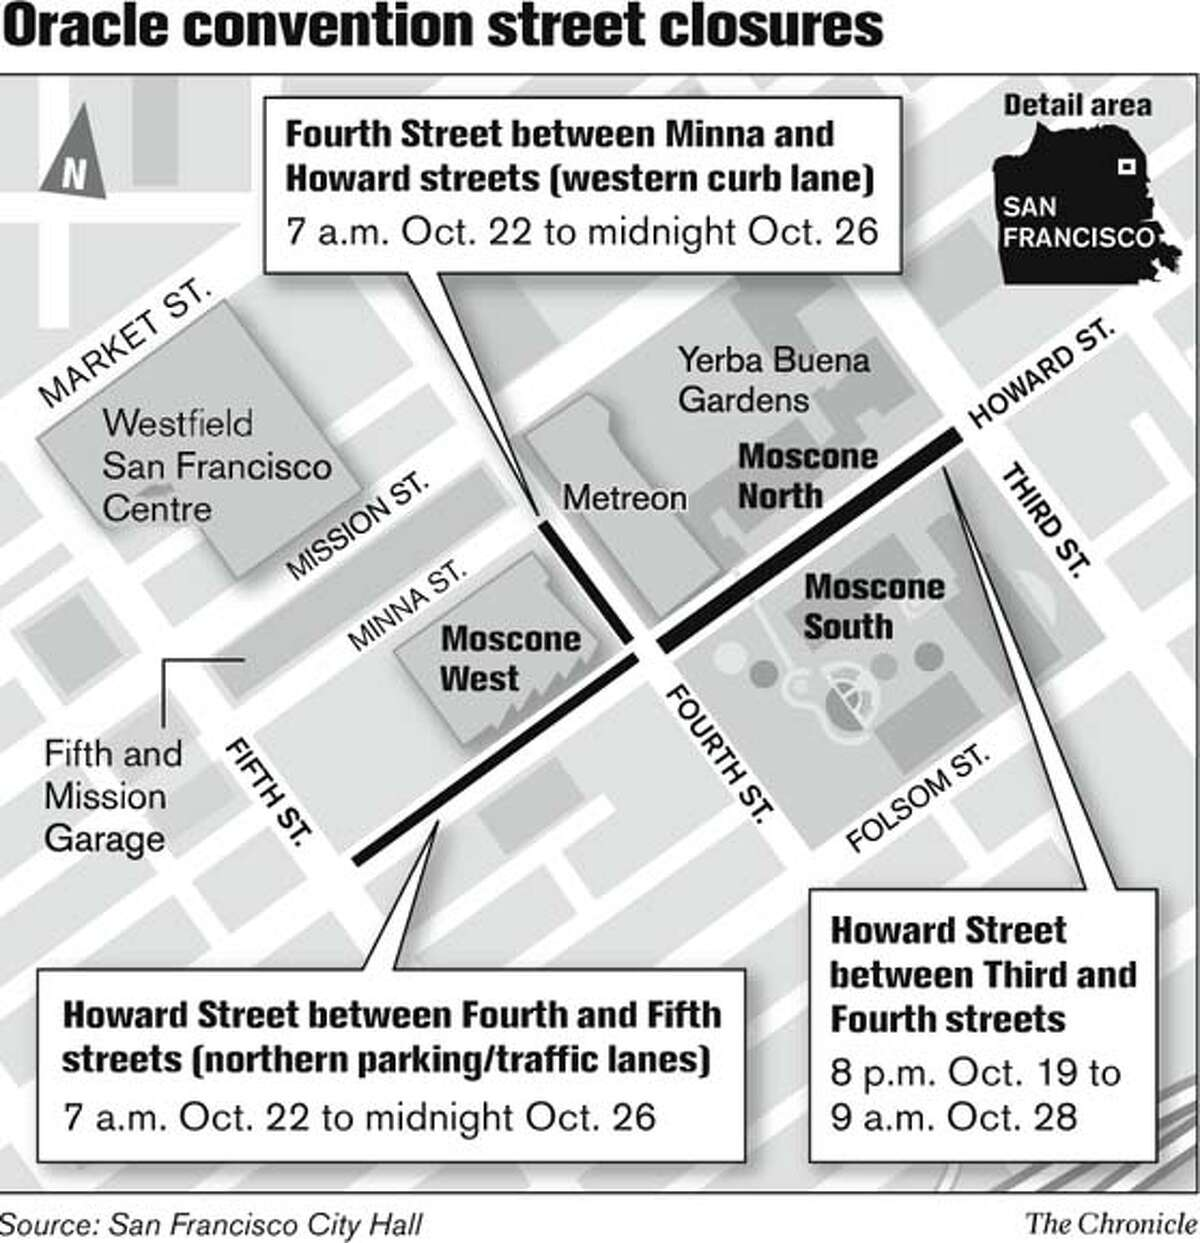 Oracle Convention Street Closures. Chronicle Graphic